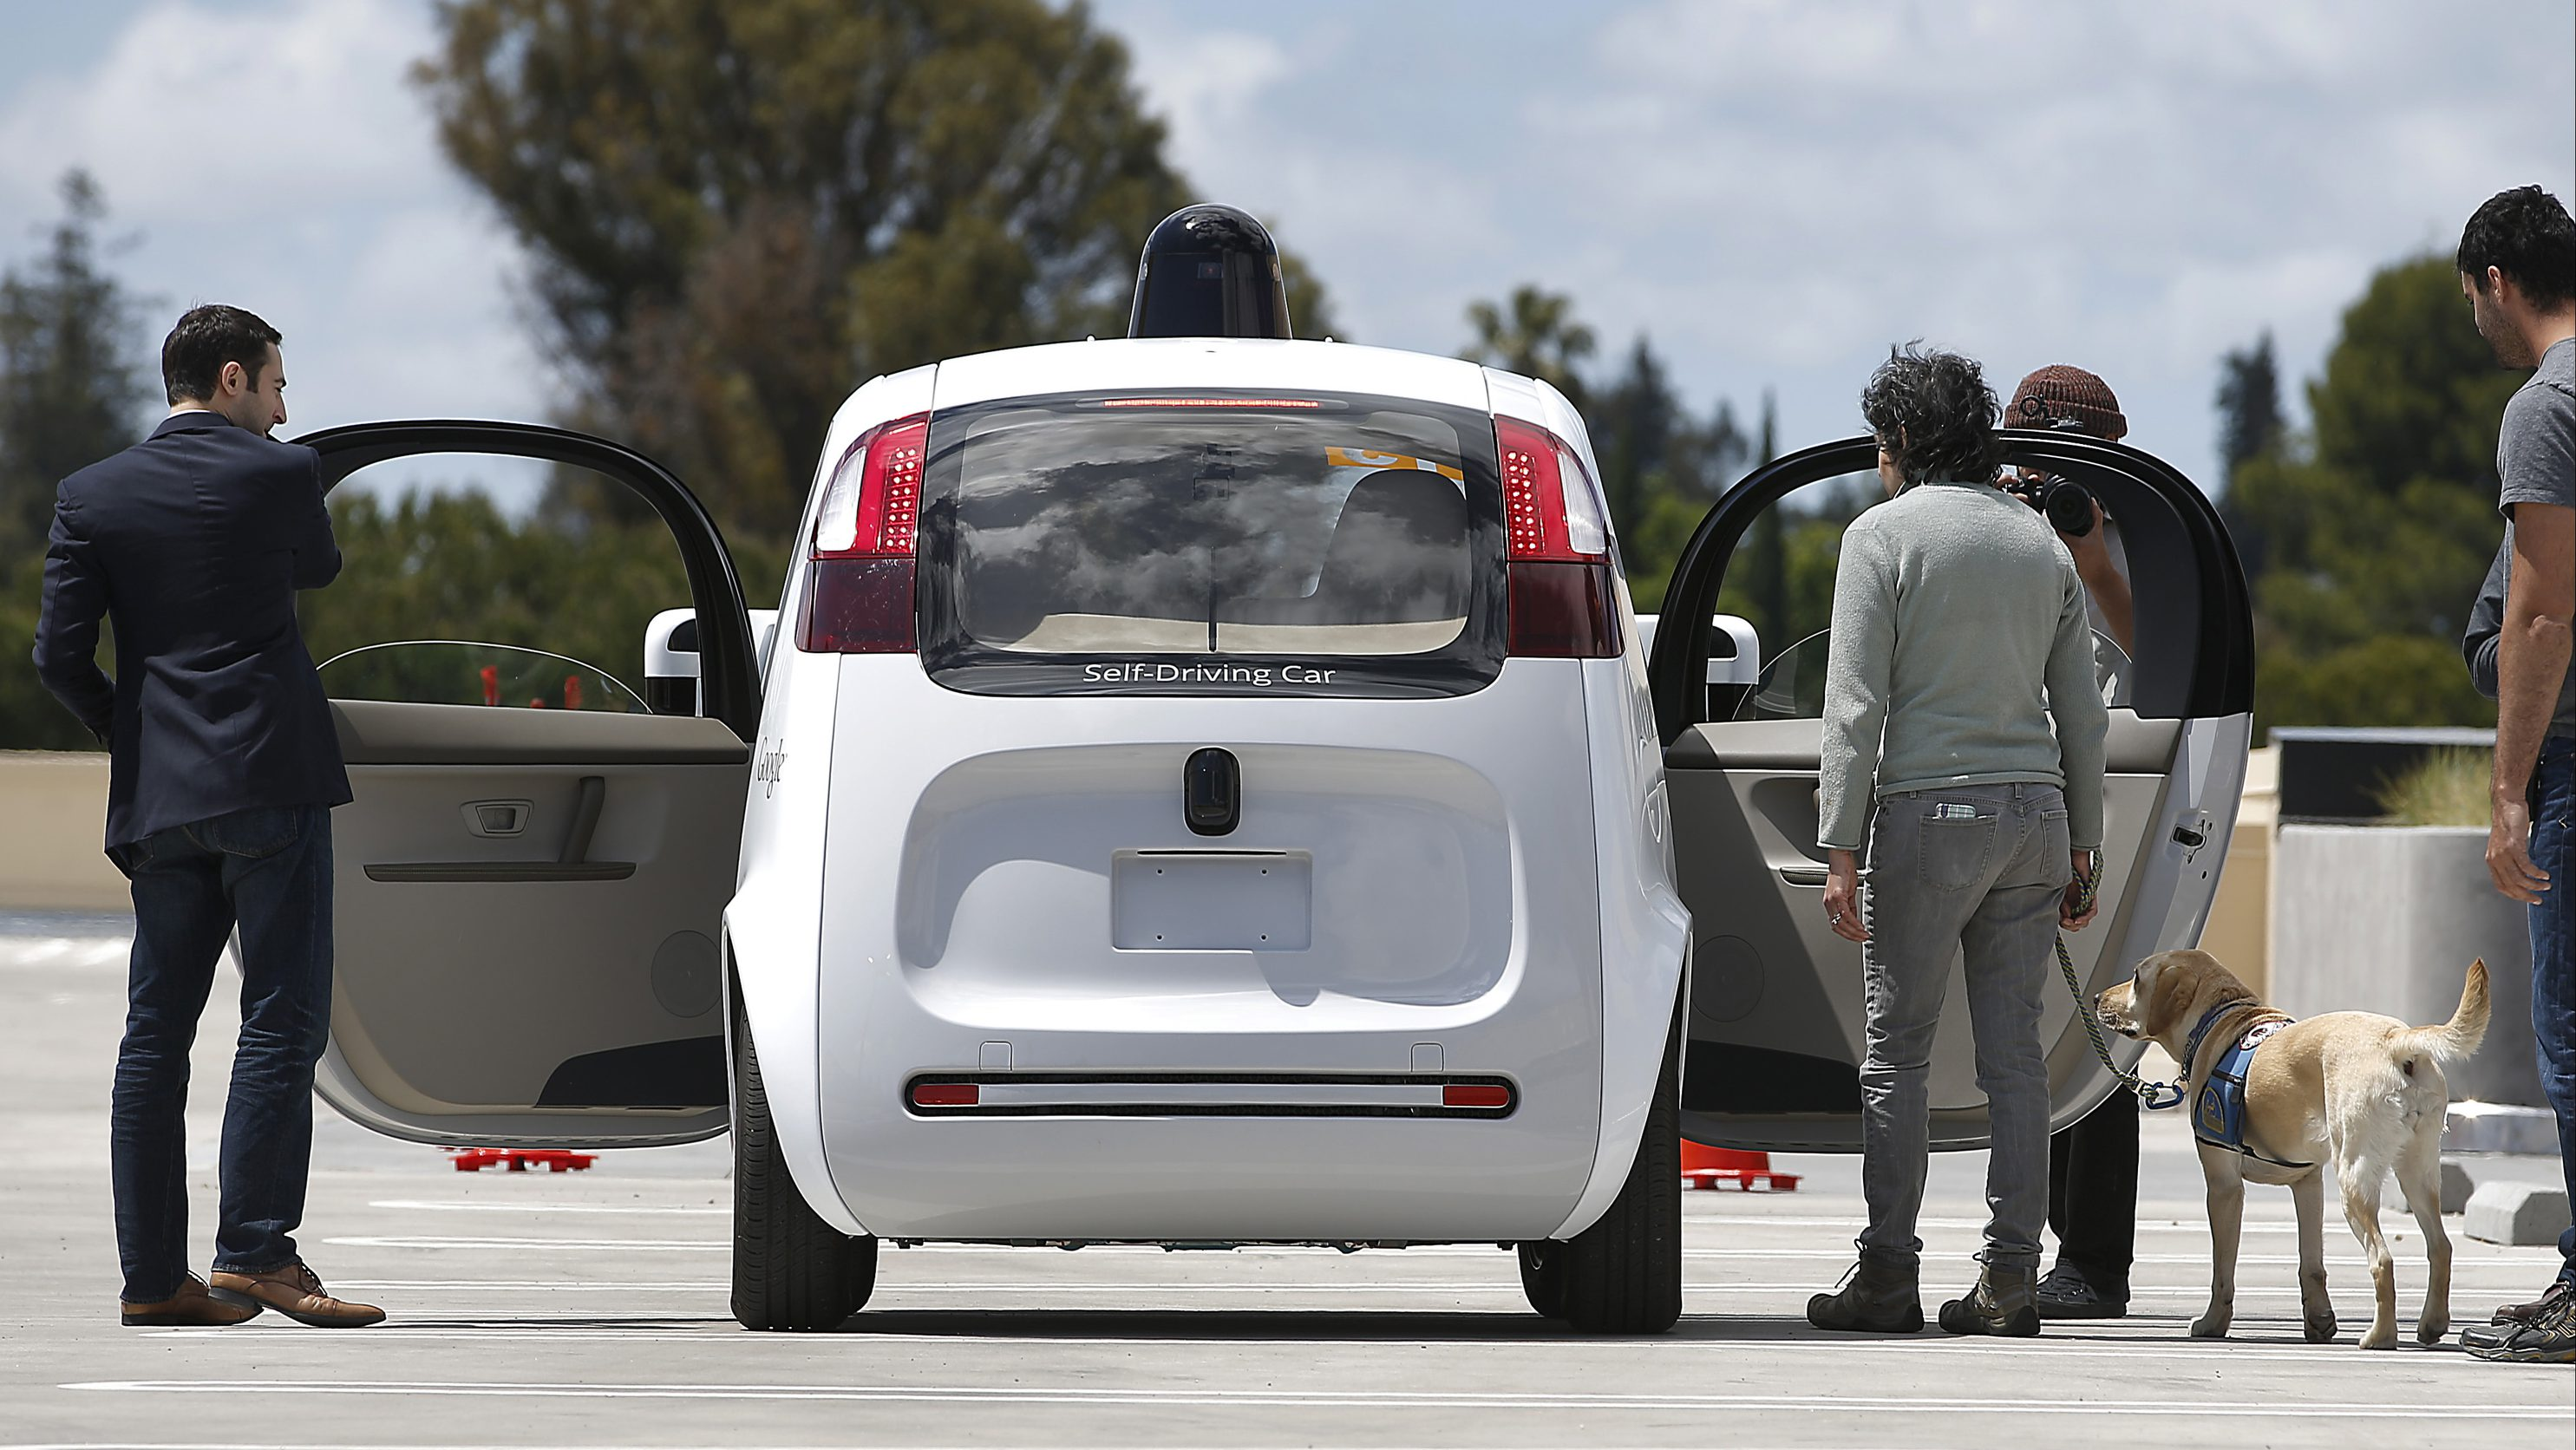 FILE - This May 13, 2015 file photo shows the front of Google's new self-driving prototype car during a demonstration at the Google campus in Mountain View, Calif. New cars that can steer and brake themselves may lull drivers into a false sense of security. One way to keep people alert may be providing distractions that are now illegal, just one surprising finding from Stanford University research that studied the behavior of students in a self-driving car simulator.(AP Photo/Tony Avelar, File)